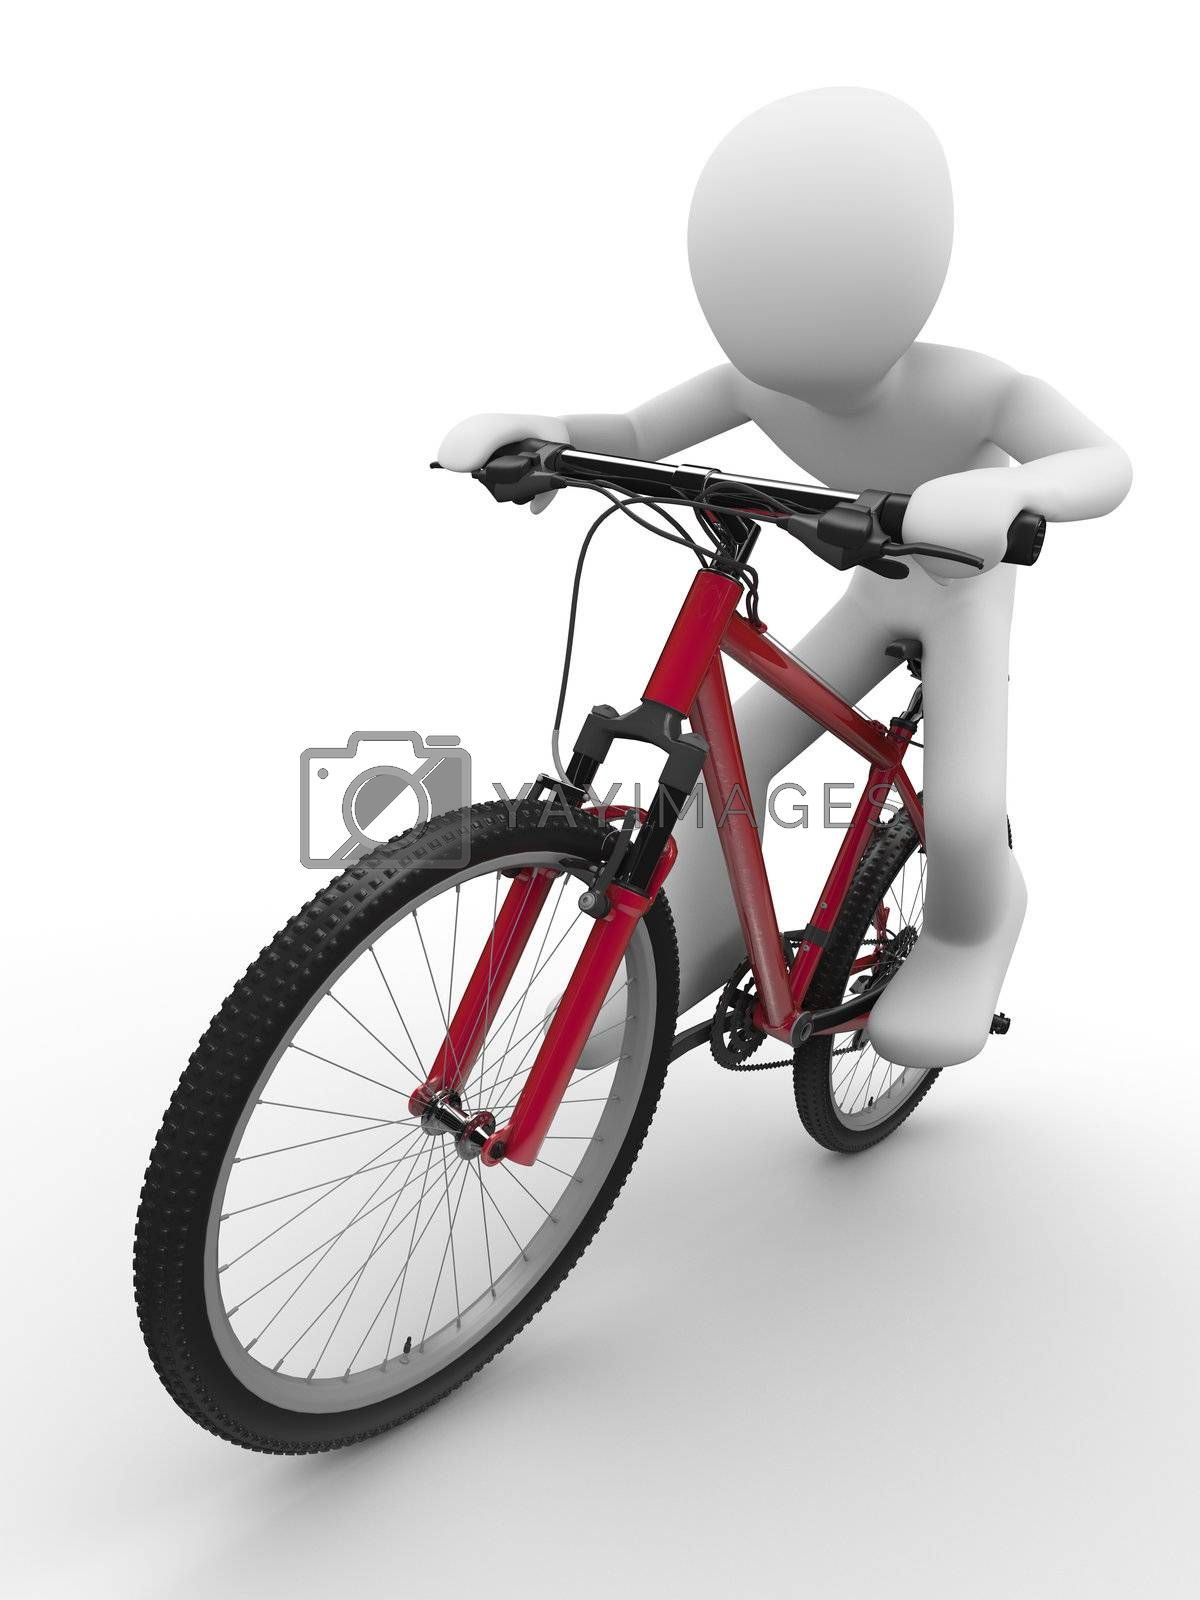 Ride that bike concept